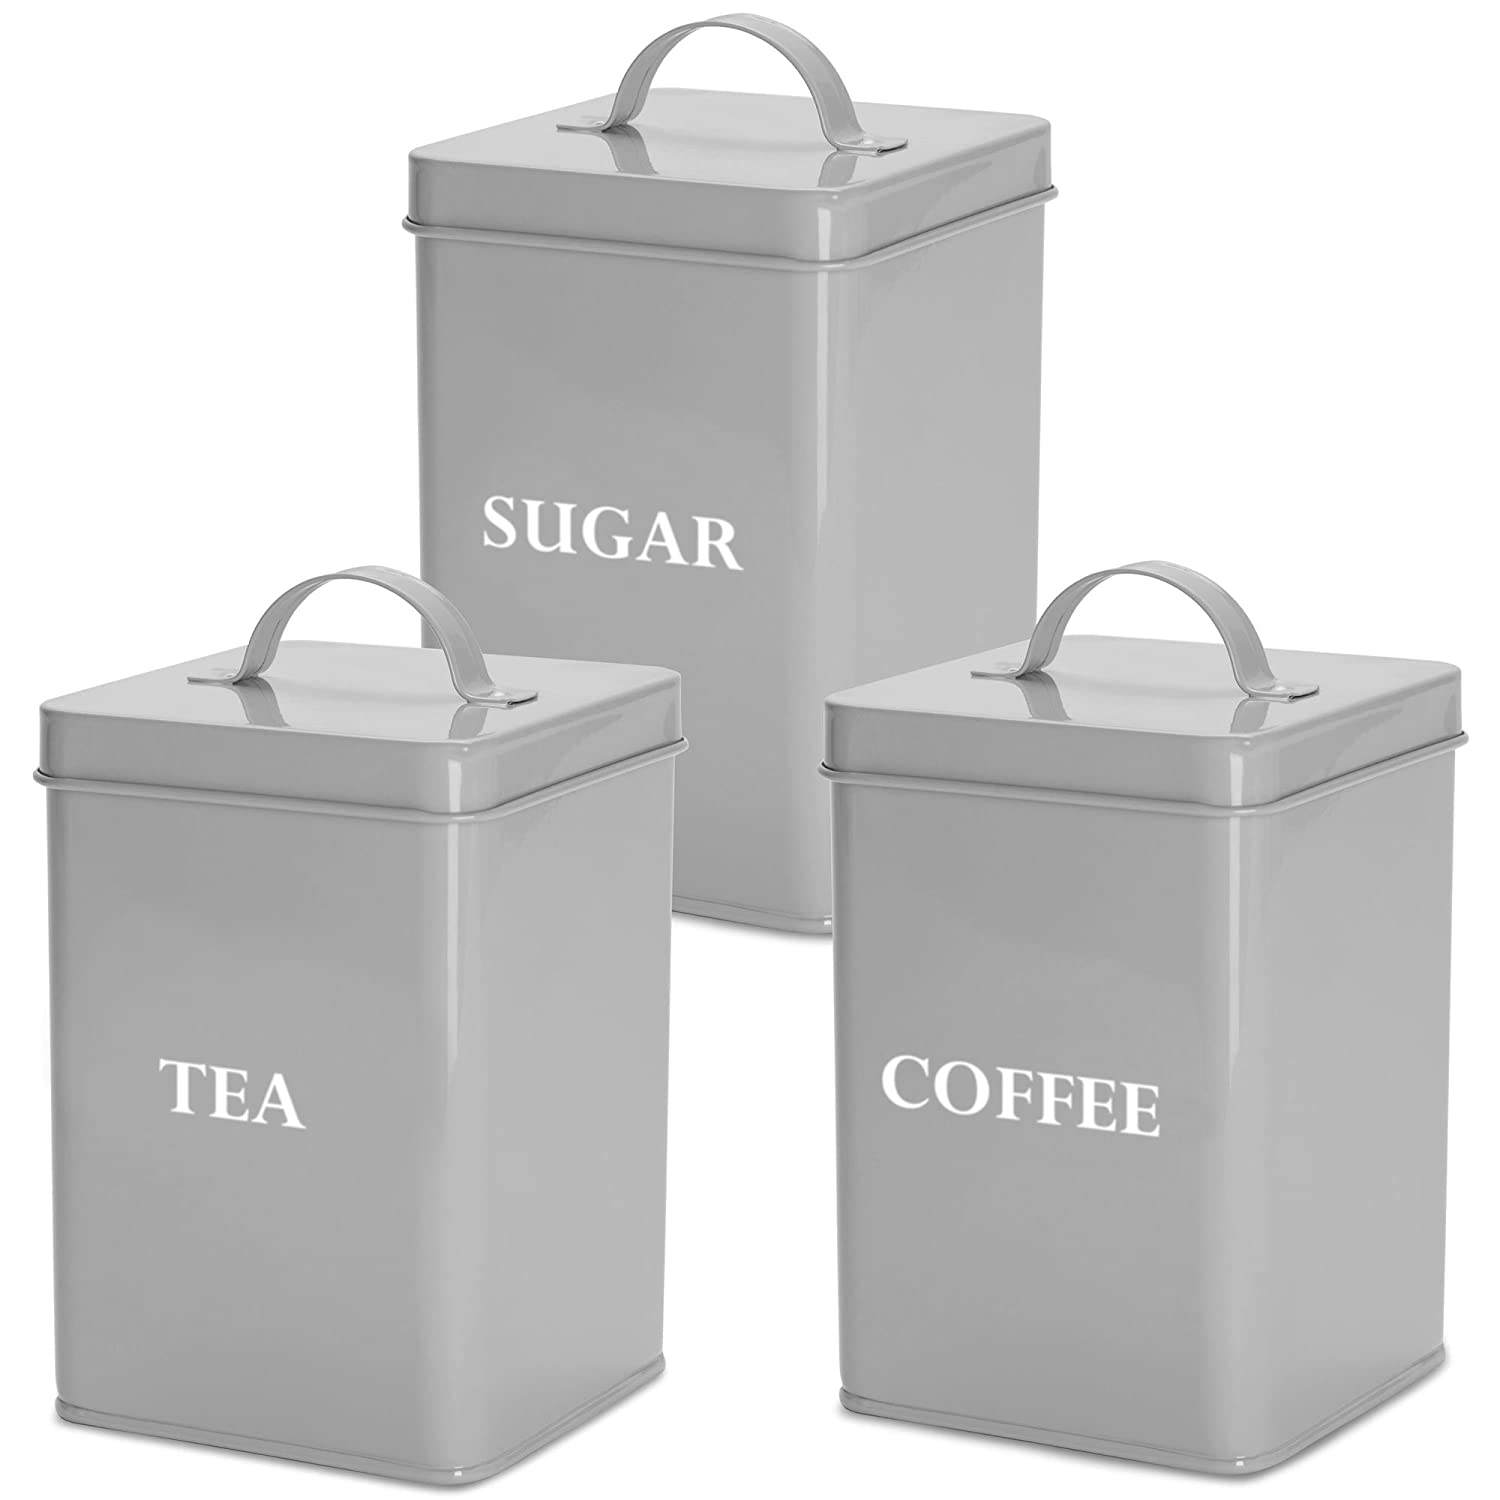 Andrew James Tea Coffee Sugar Canisters | Vintage Style Kitchen Storage Set | Rust Resistant Powder Coated Iron | Grey with White Text Labels